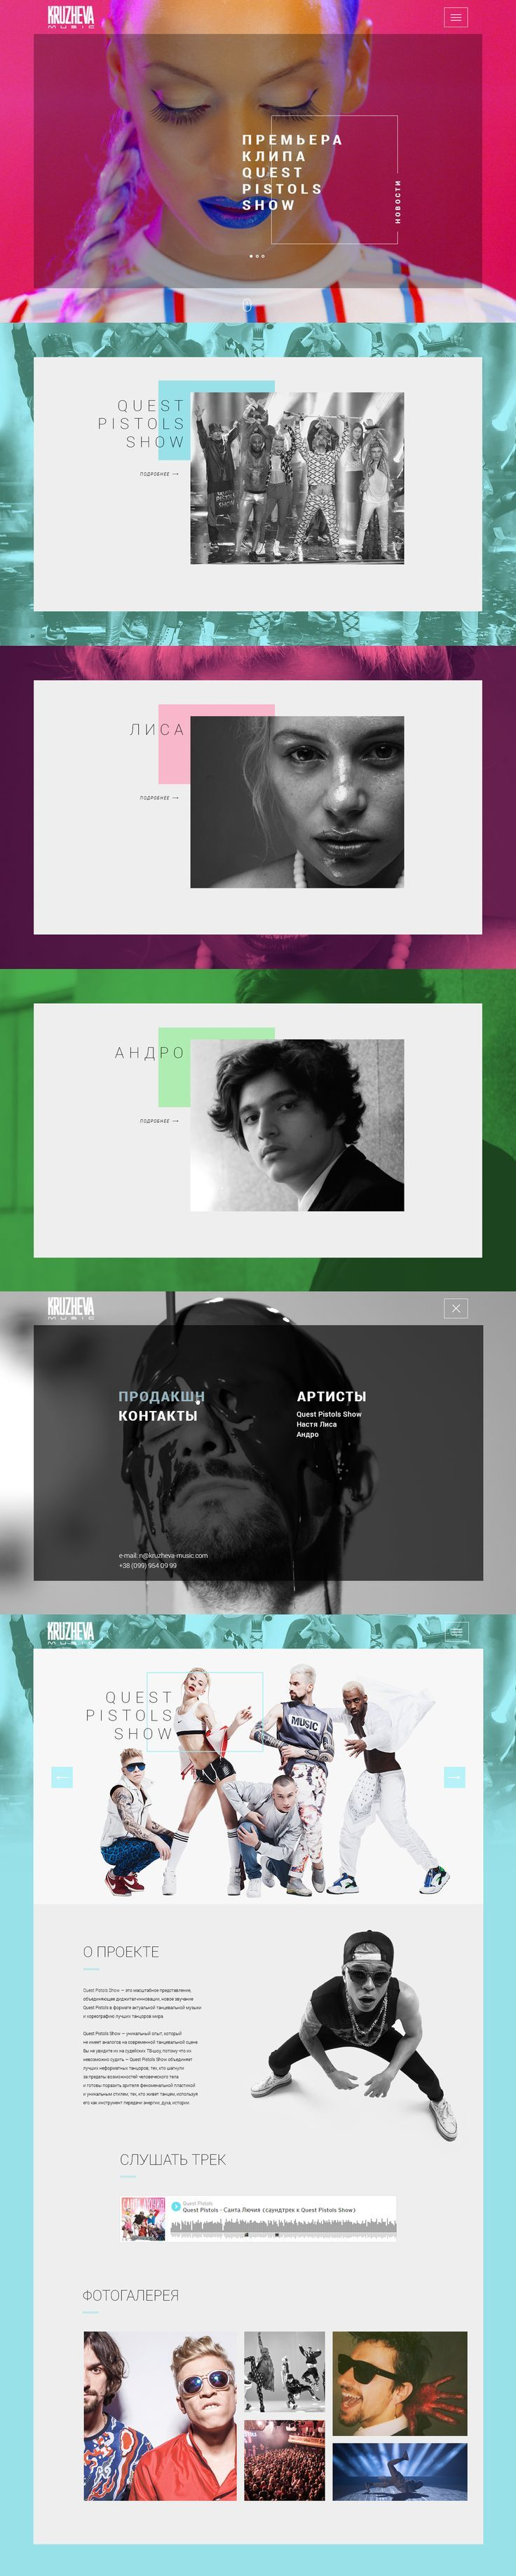 Kruzheva music promotion on Behance